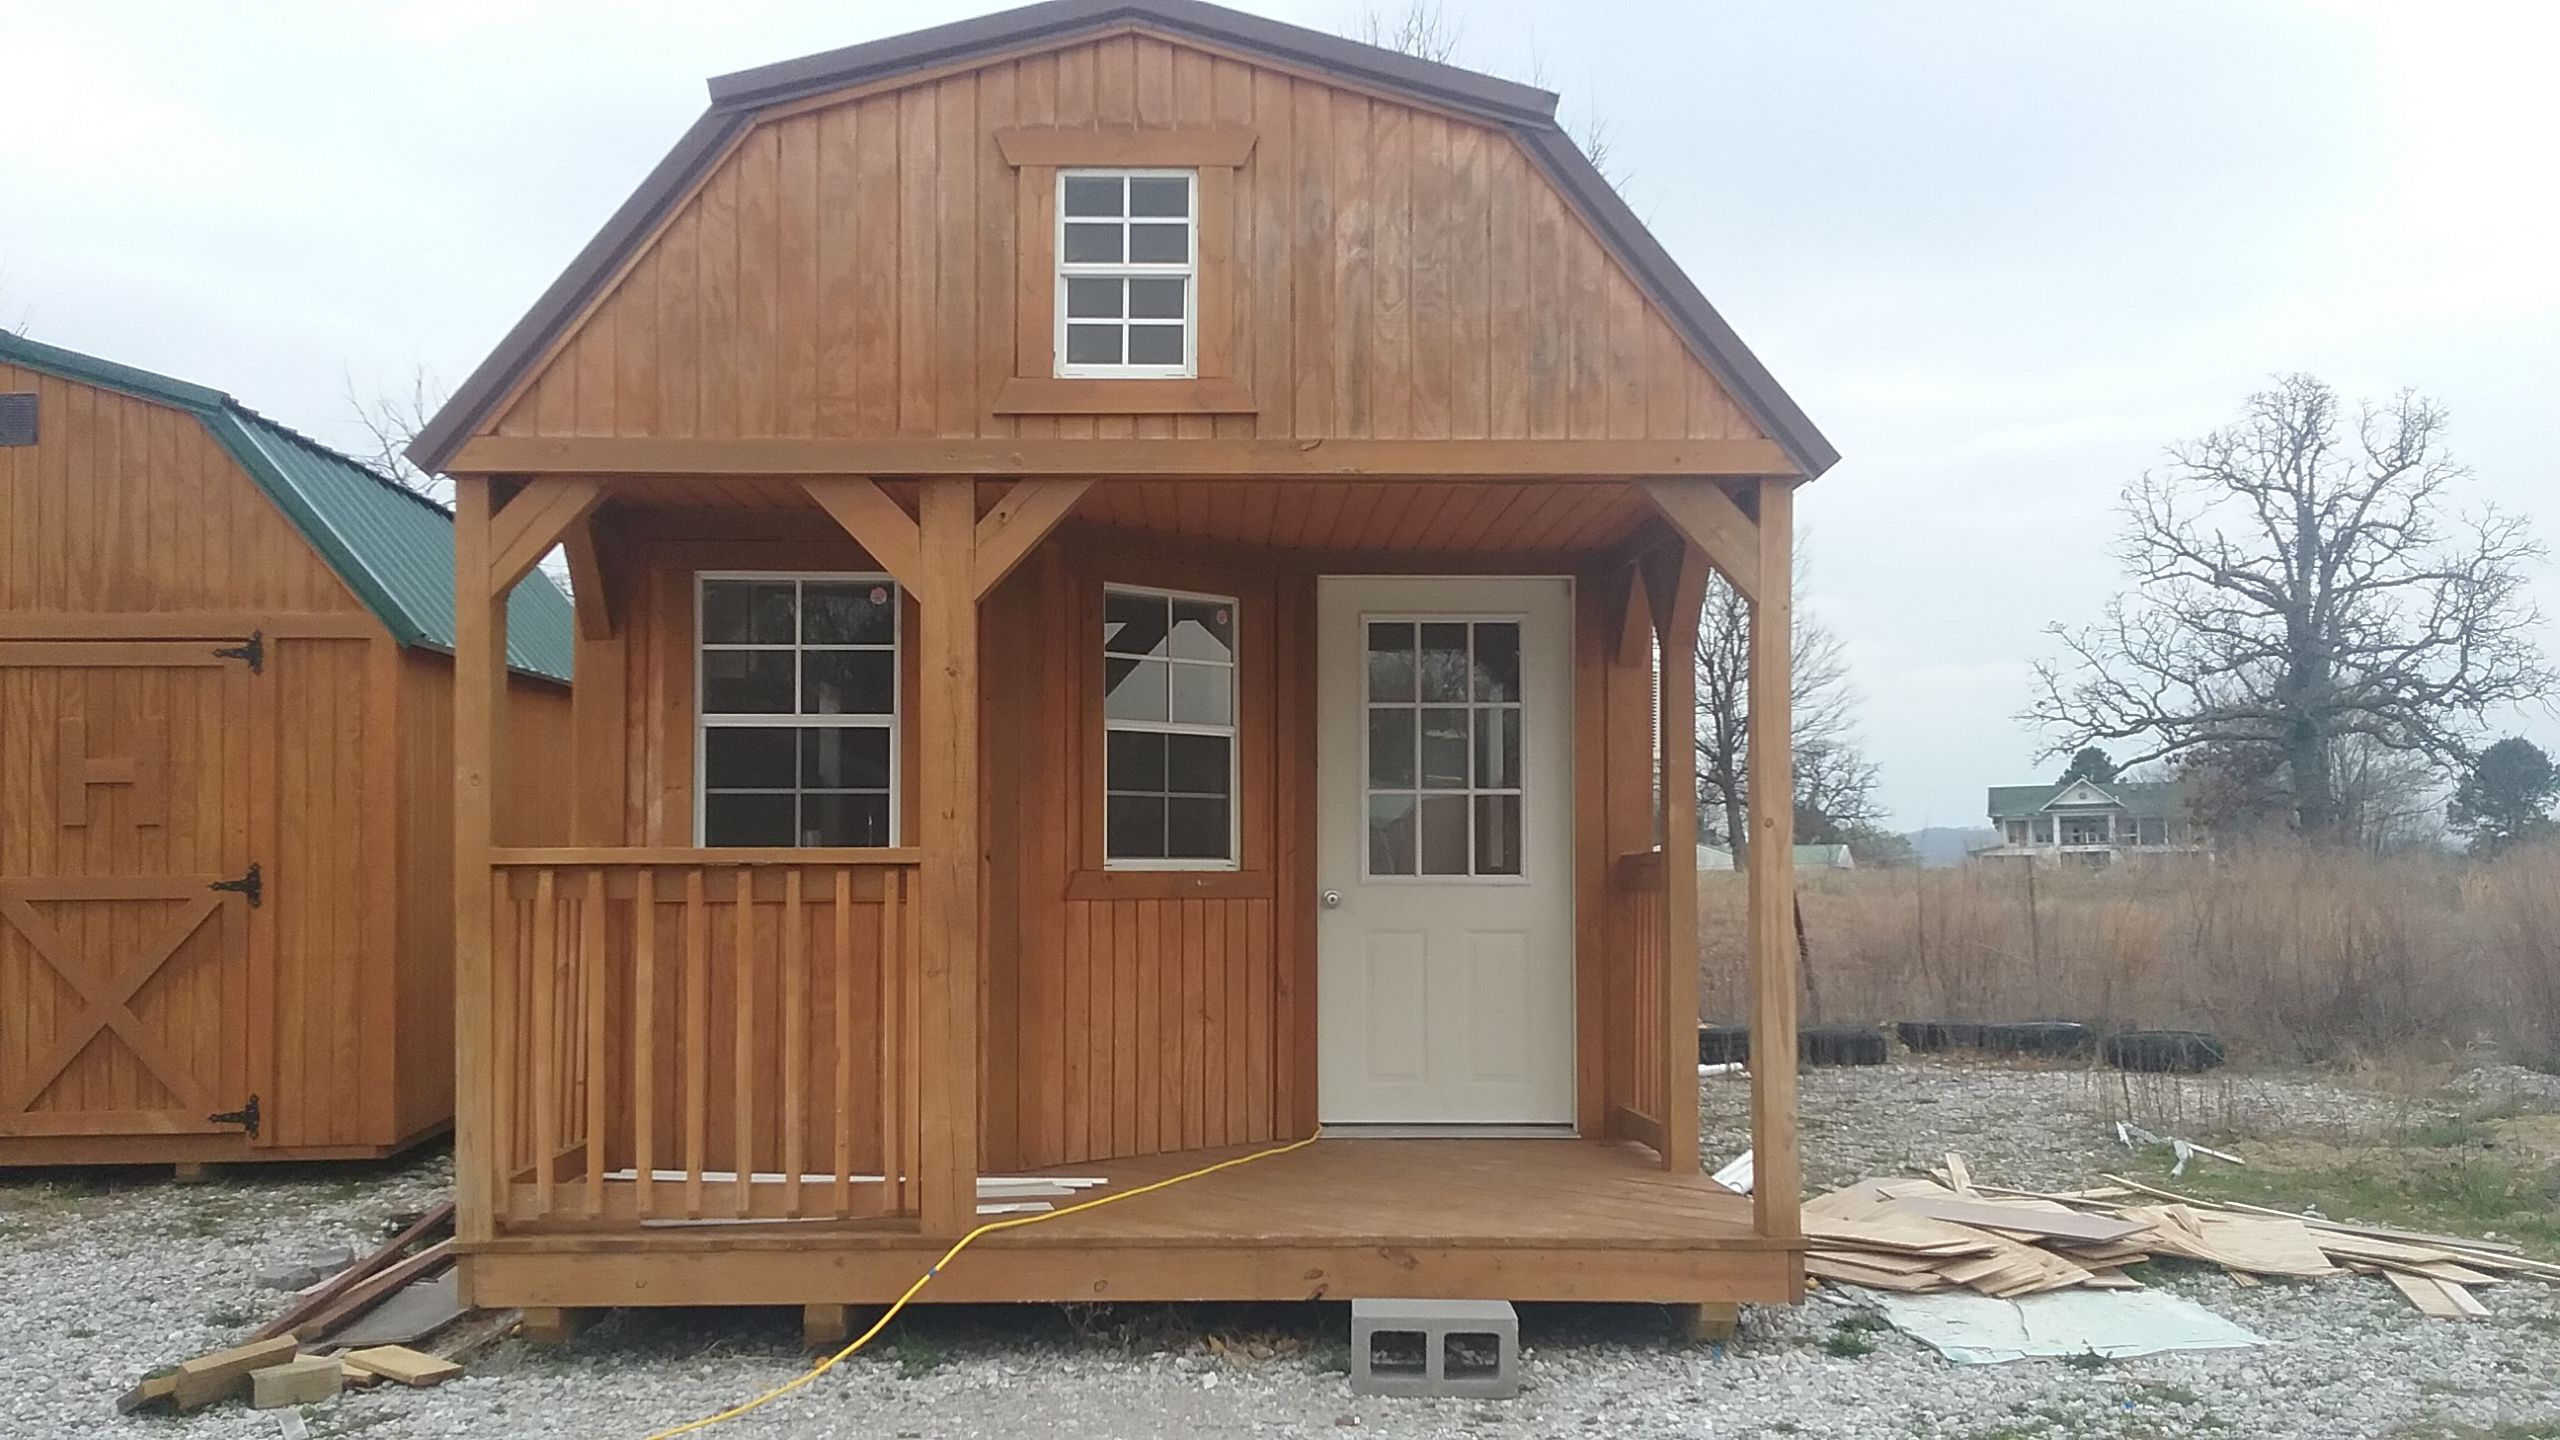 Brand New 2016 Lofted Cabin Tiny House For Sale In